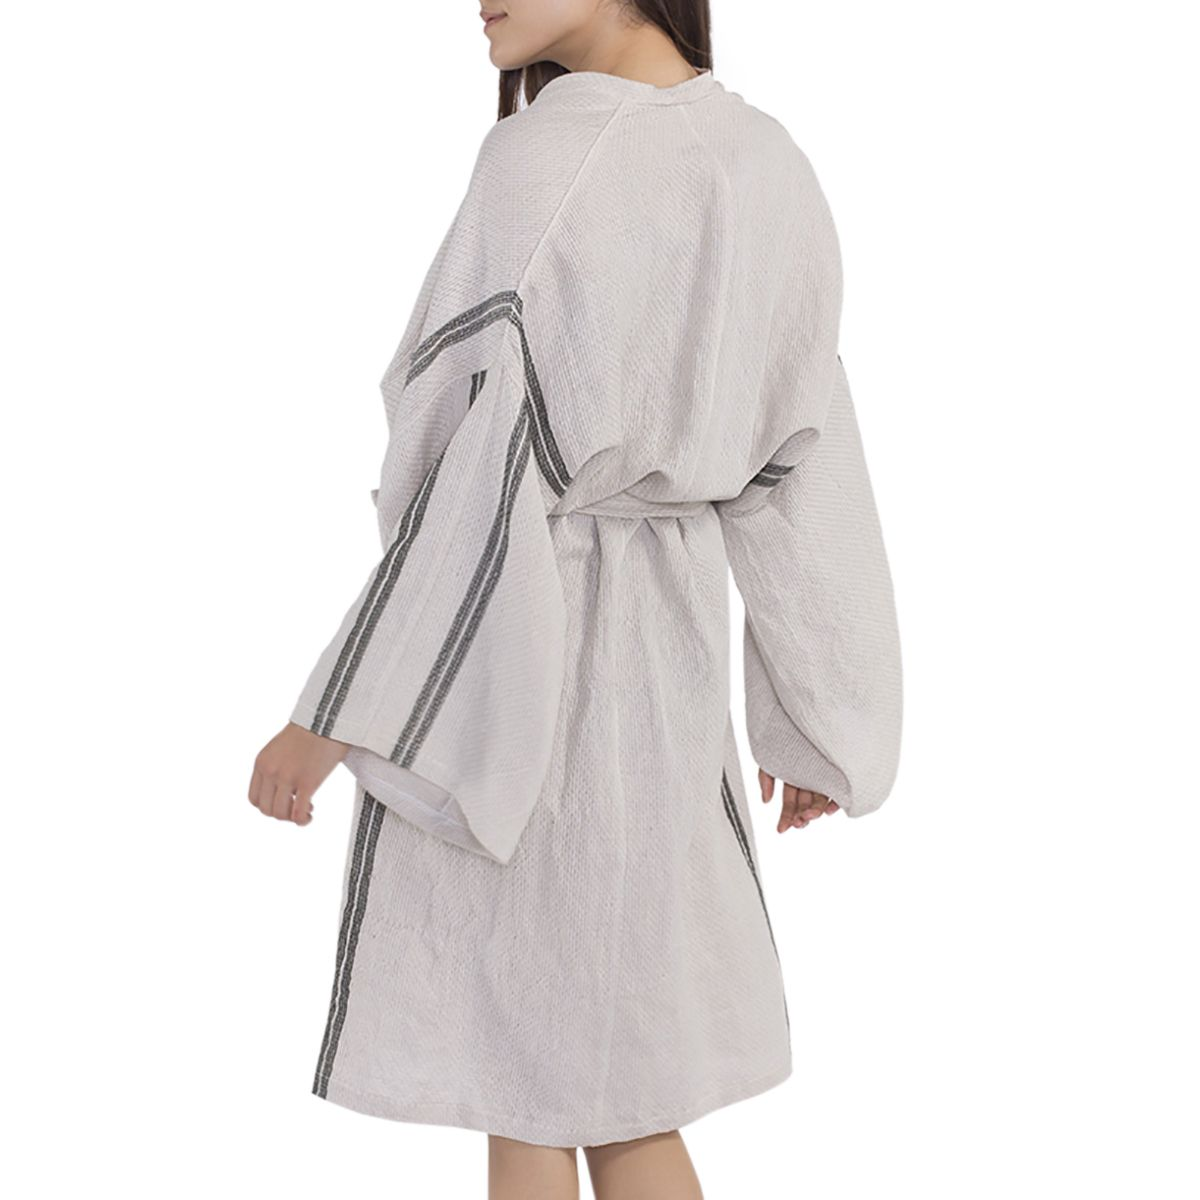 Bathrobe Dressing Gown Honeycombed - Grey / Khaki Stripes